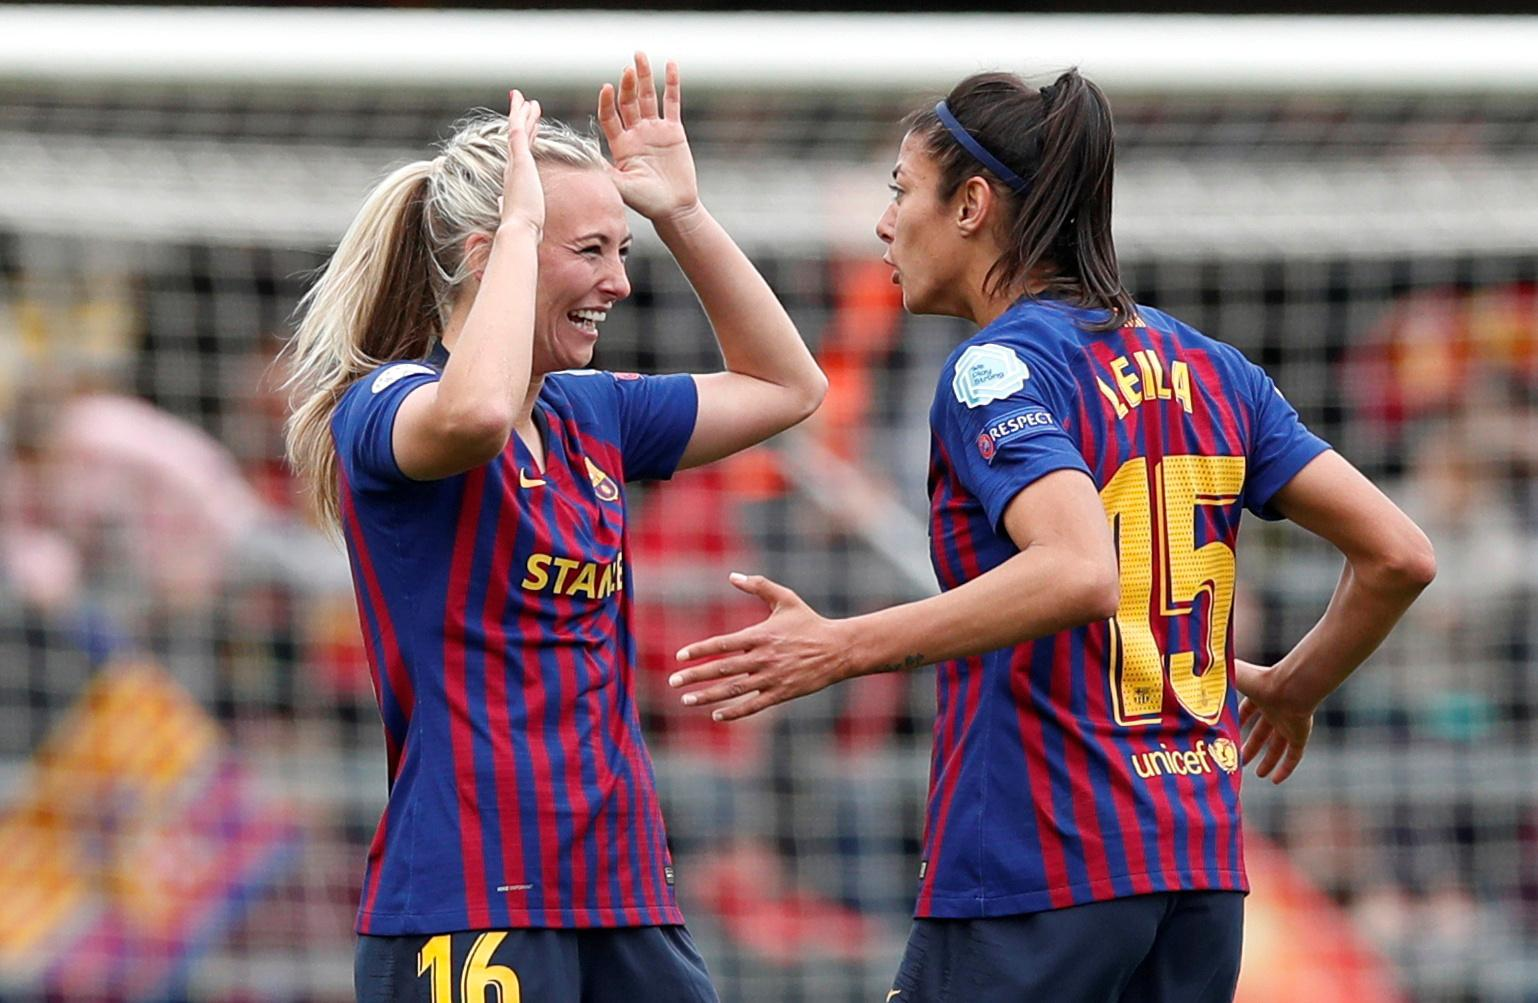 'Clasico' kickstarts women's season in Spain